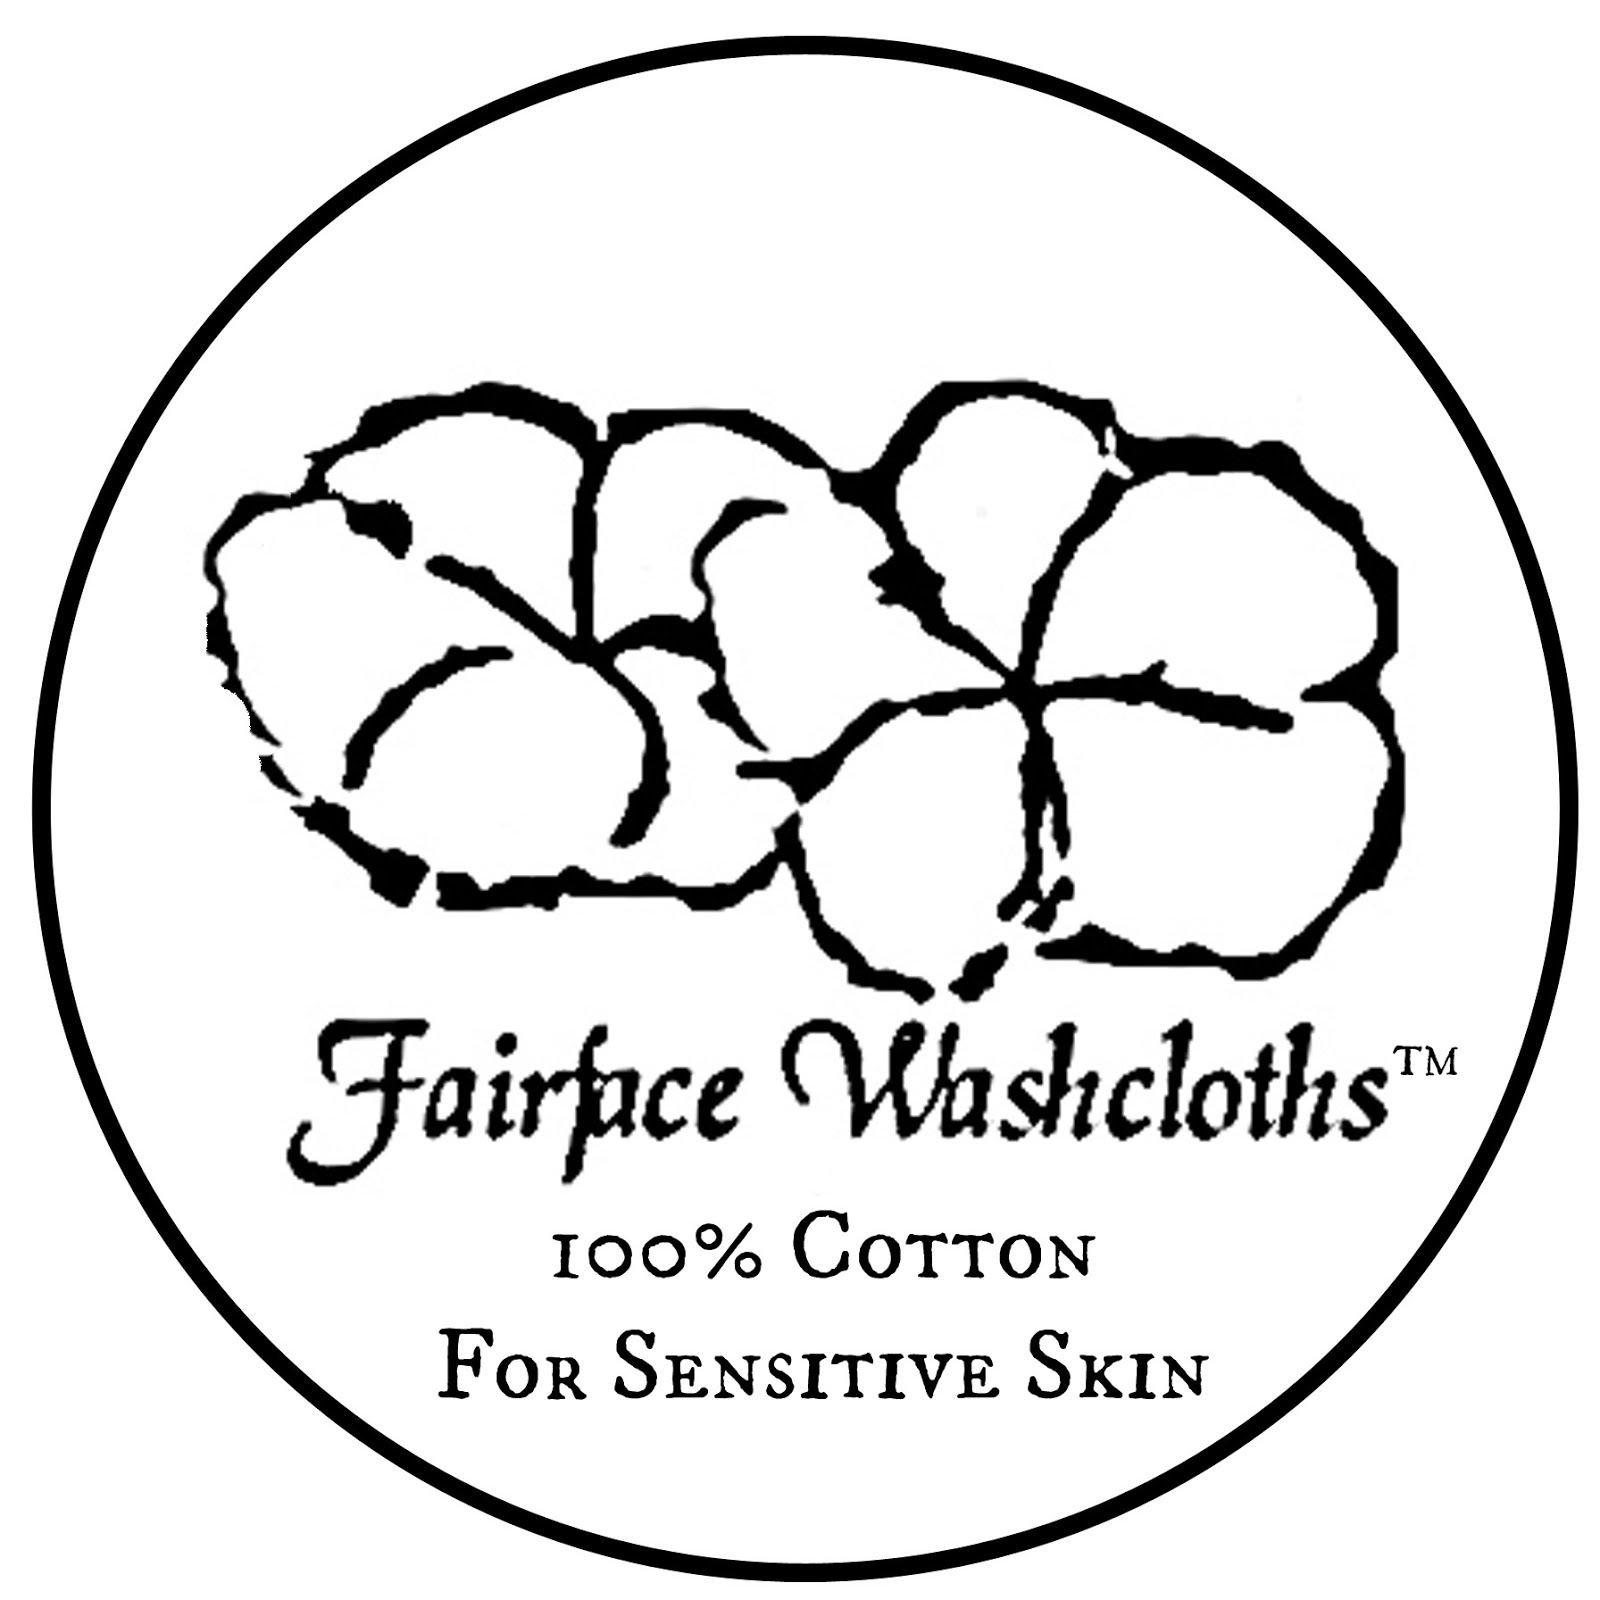 best wash cloths for rosacea, dermatits, eczema, psoriasis, calming, soothing fairface washcloths